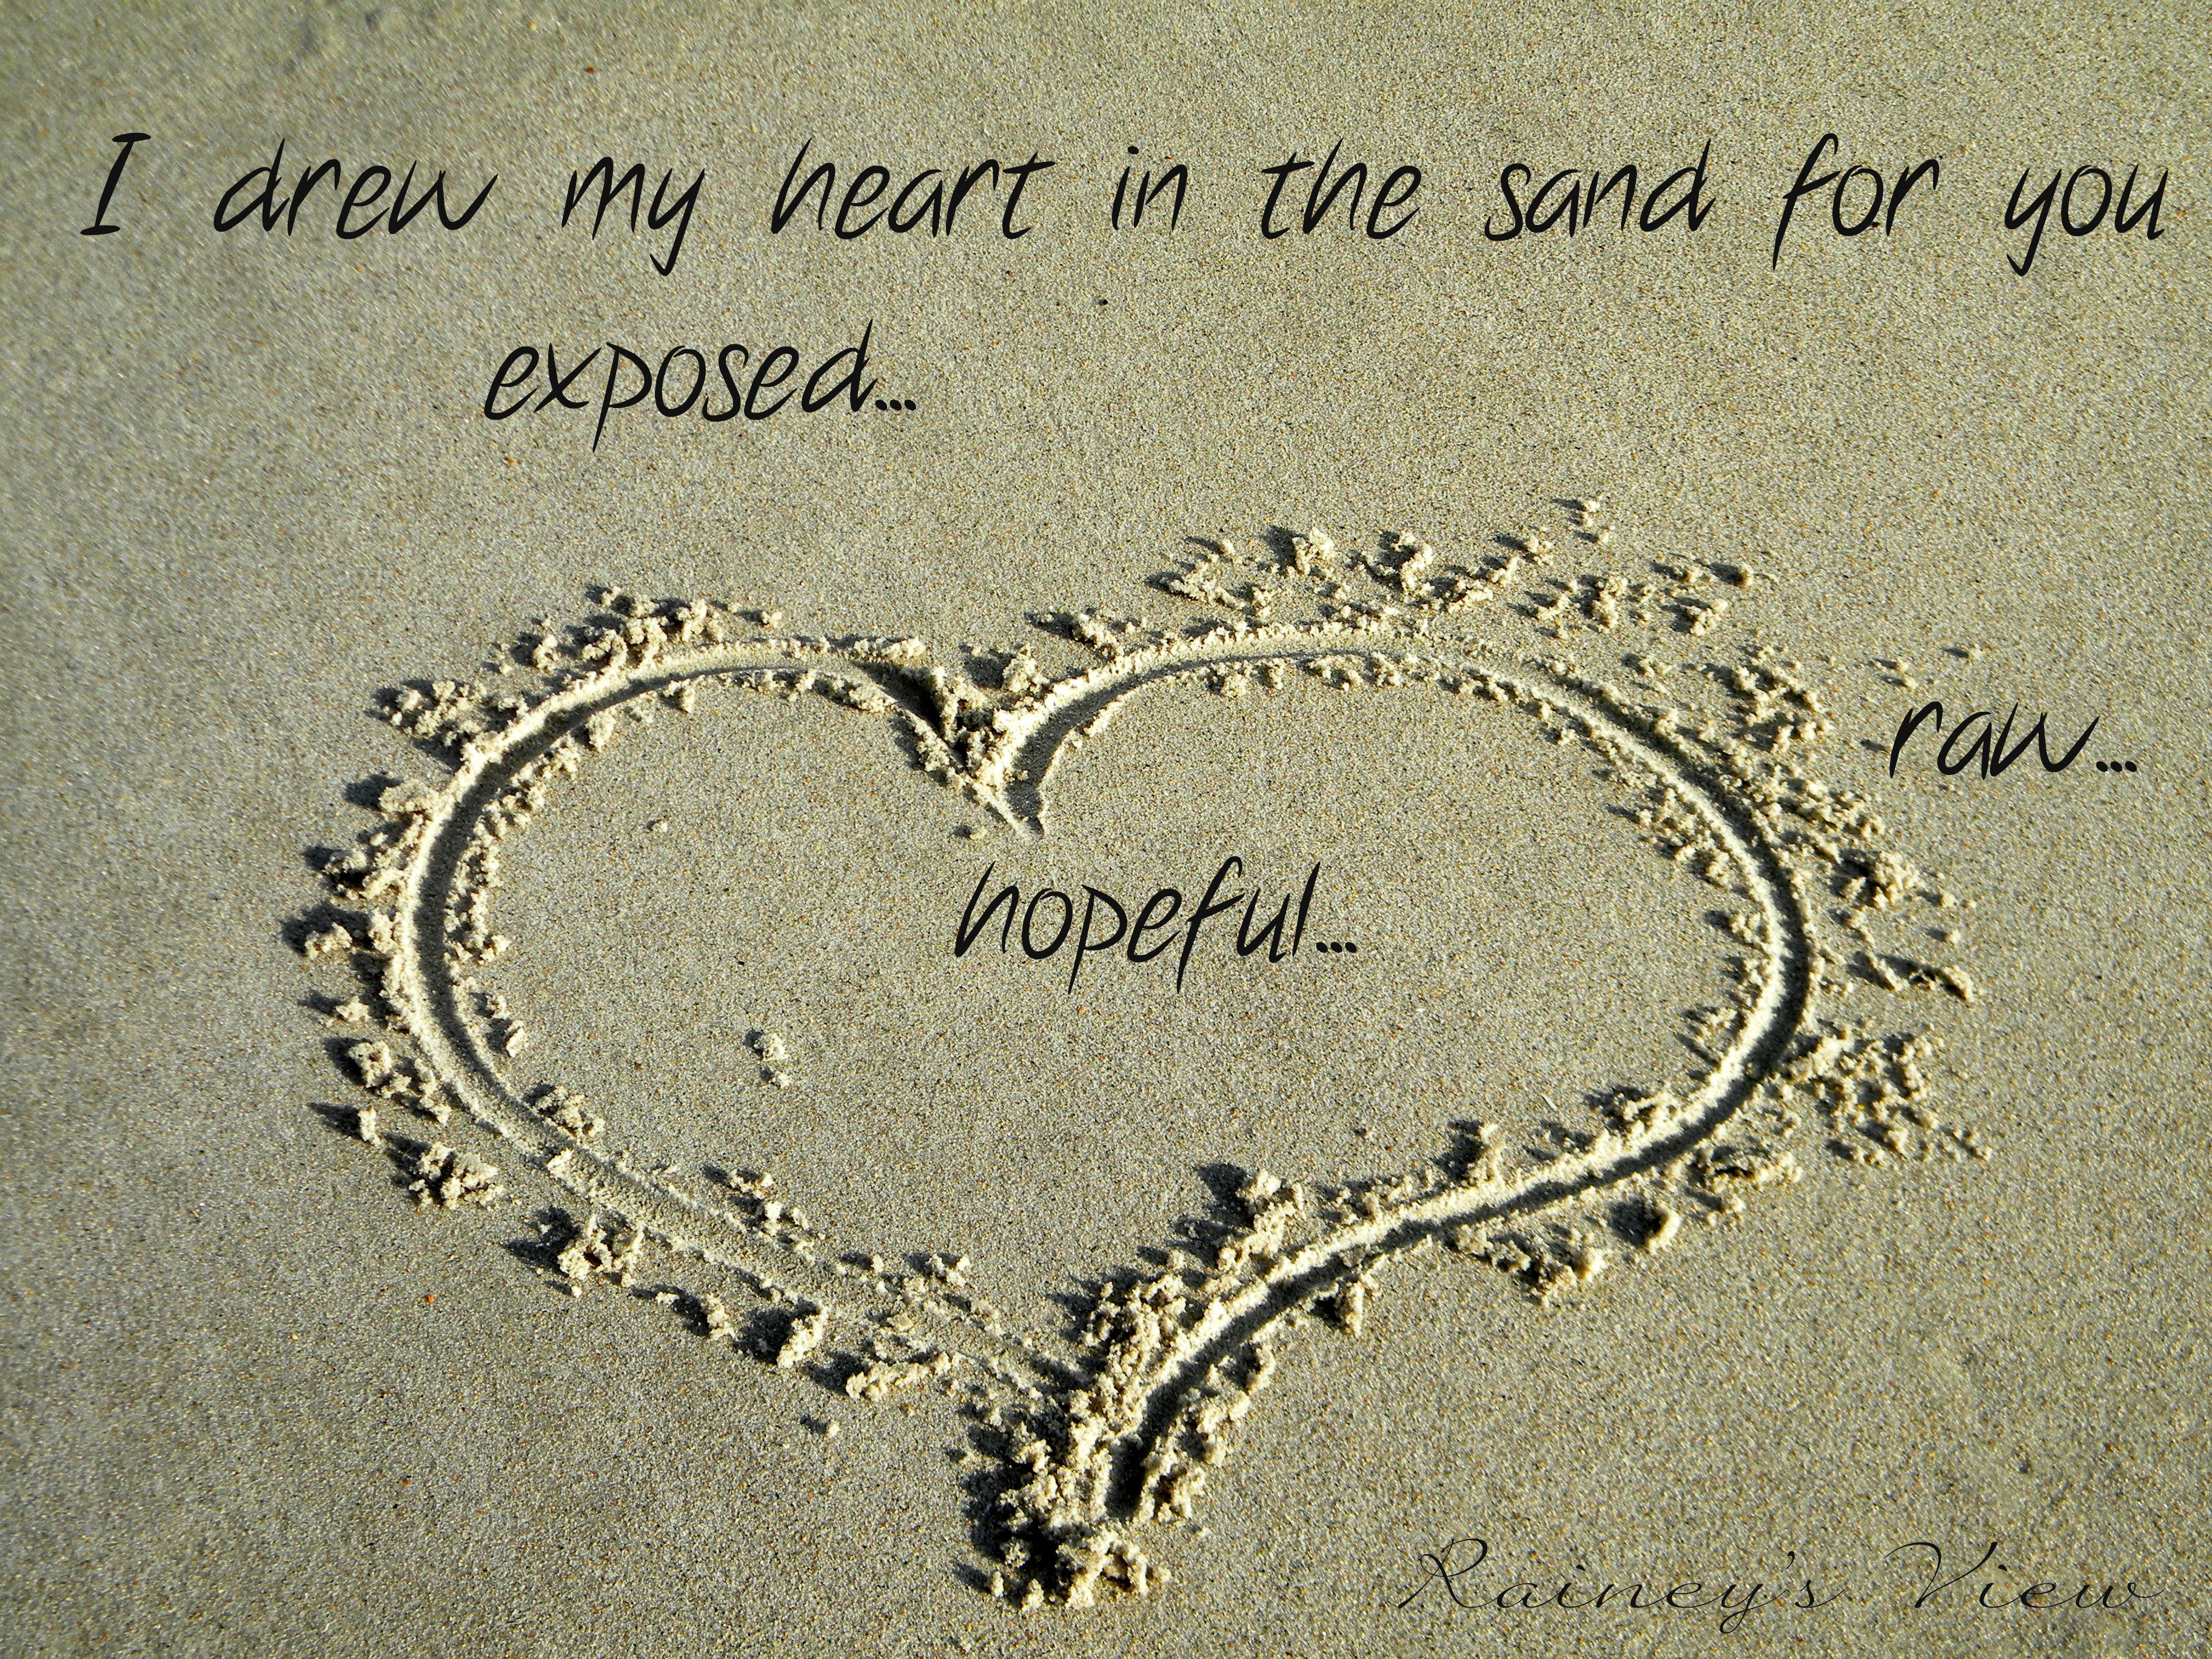 30 Heart Touching Love Poems for Her   Quotes   Pinterest